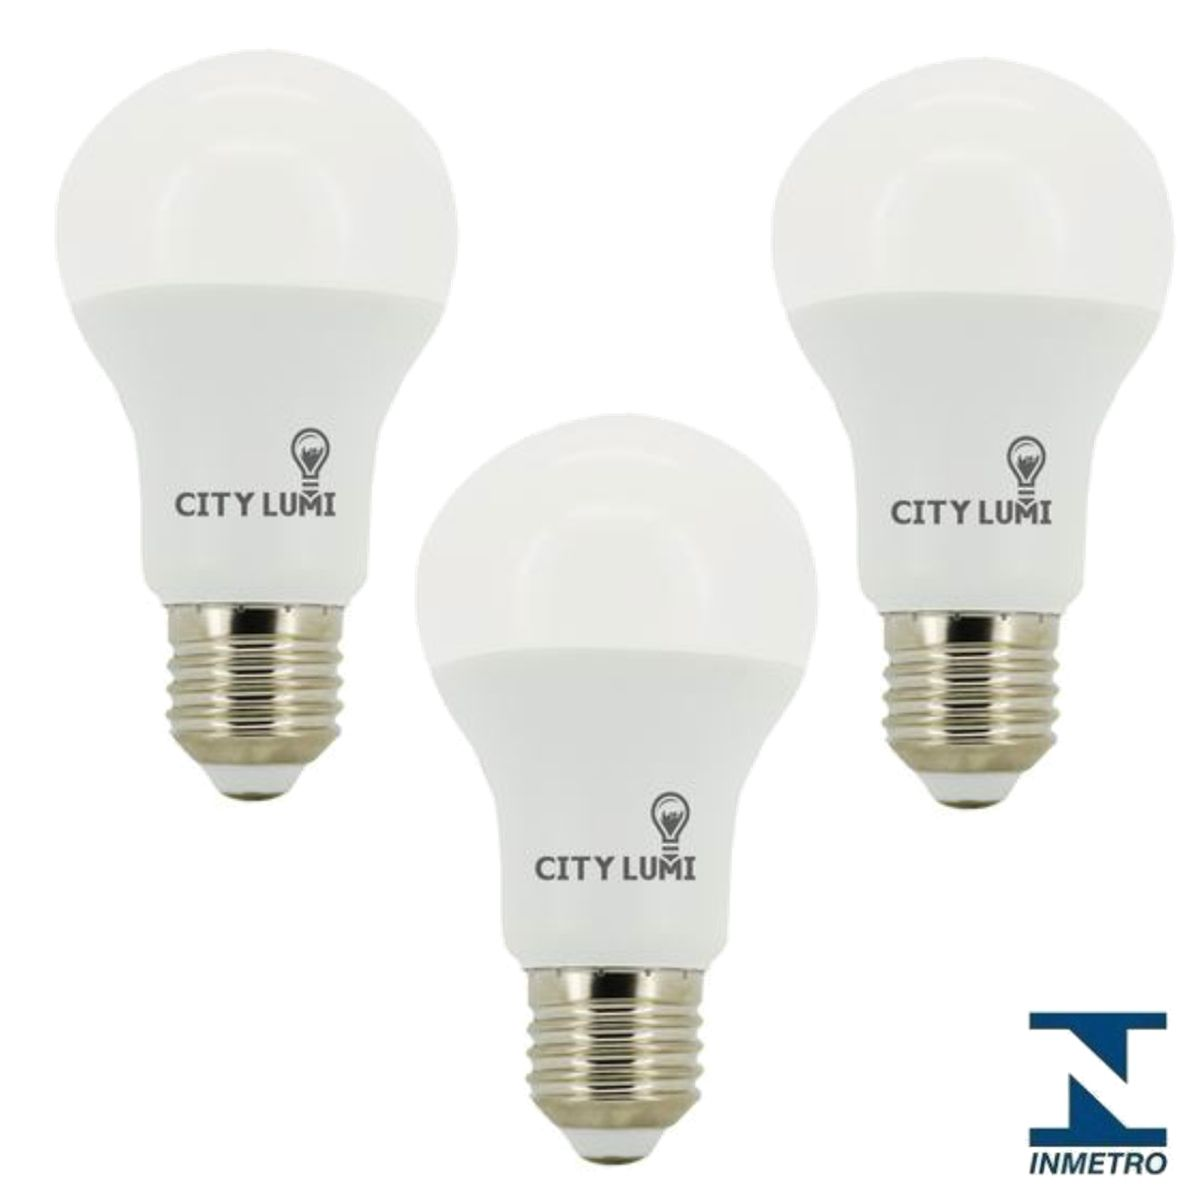 Kit 3 Lampada LED Bulbo Autodimerizavel 3 Tons 9W City Lumi